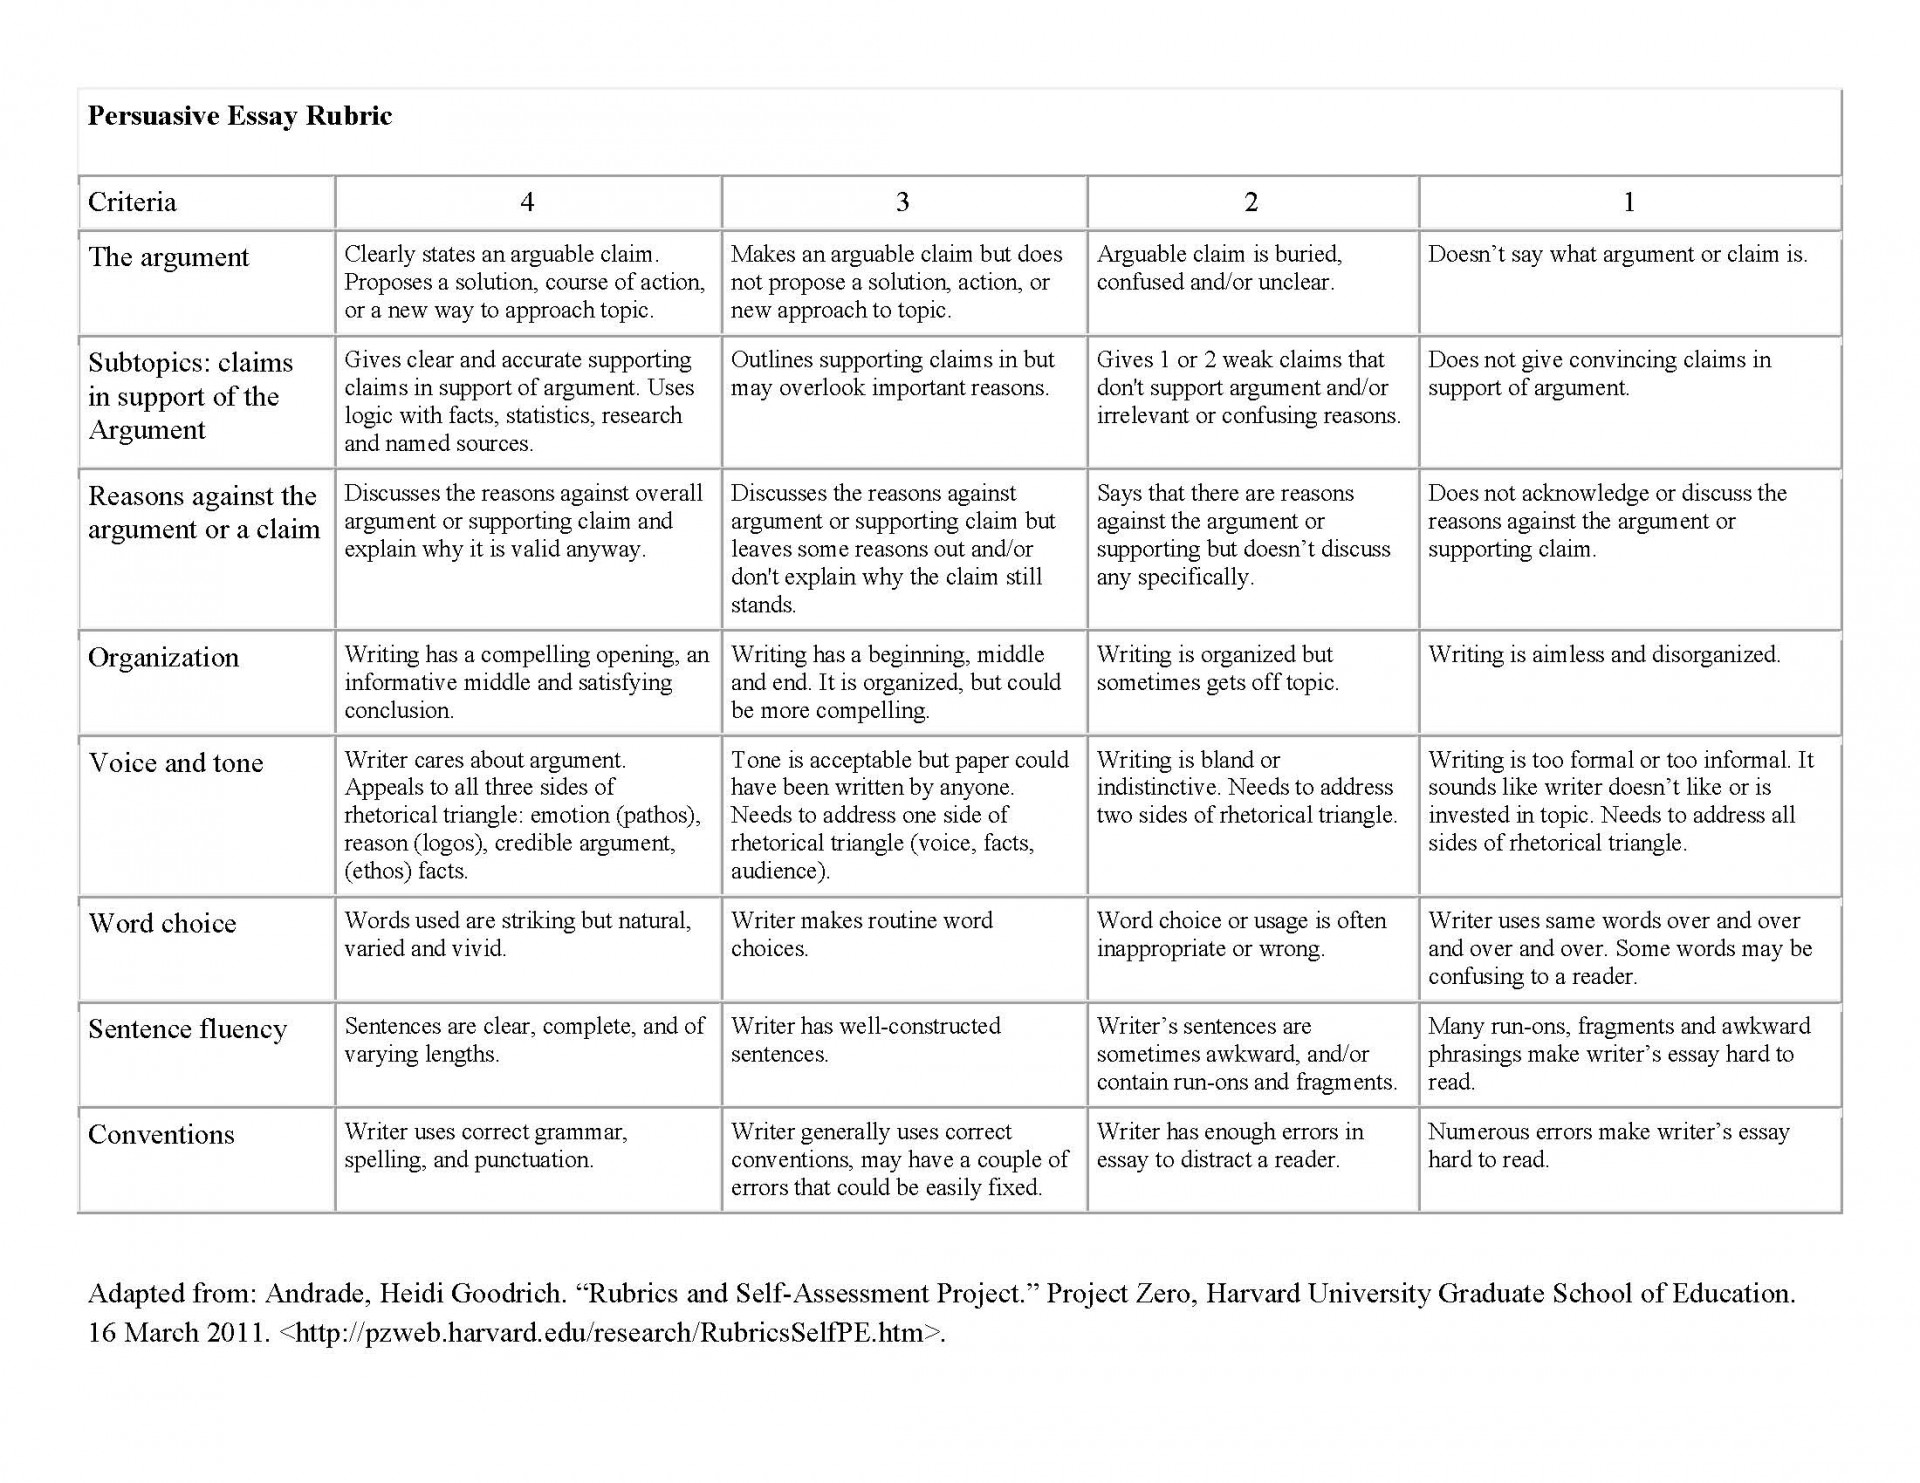 009 Art History Research Paper Rubric Handout Persuasive Unique 1920